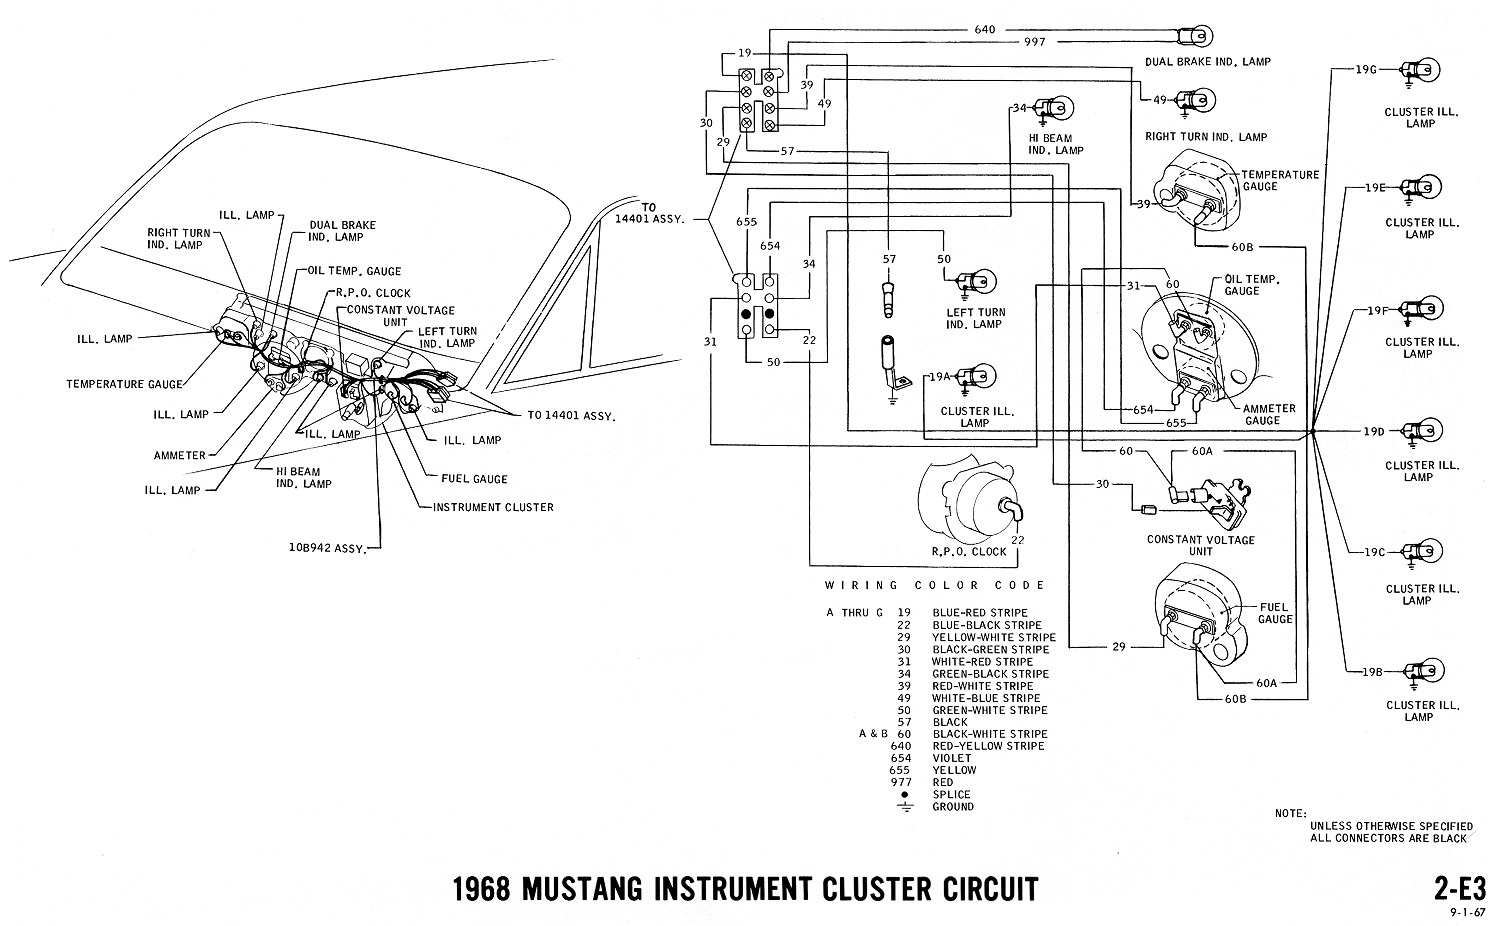 1973 cougar fuse box diagram auto electrical wiring diagram u2022 rh 6weeks co uk